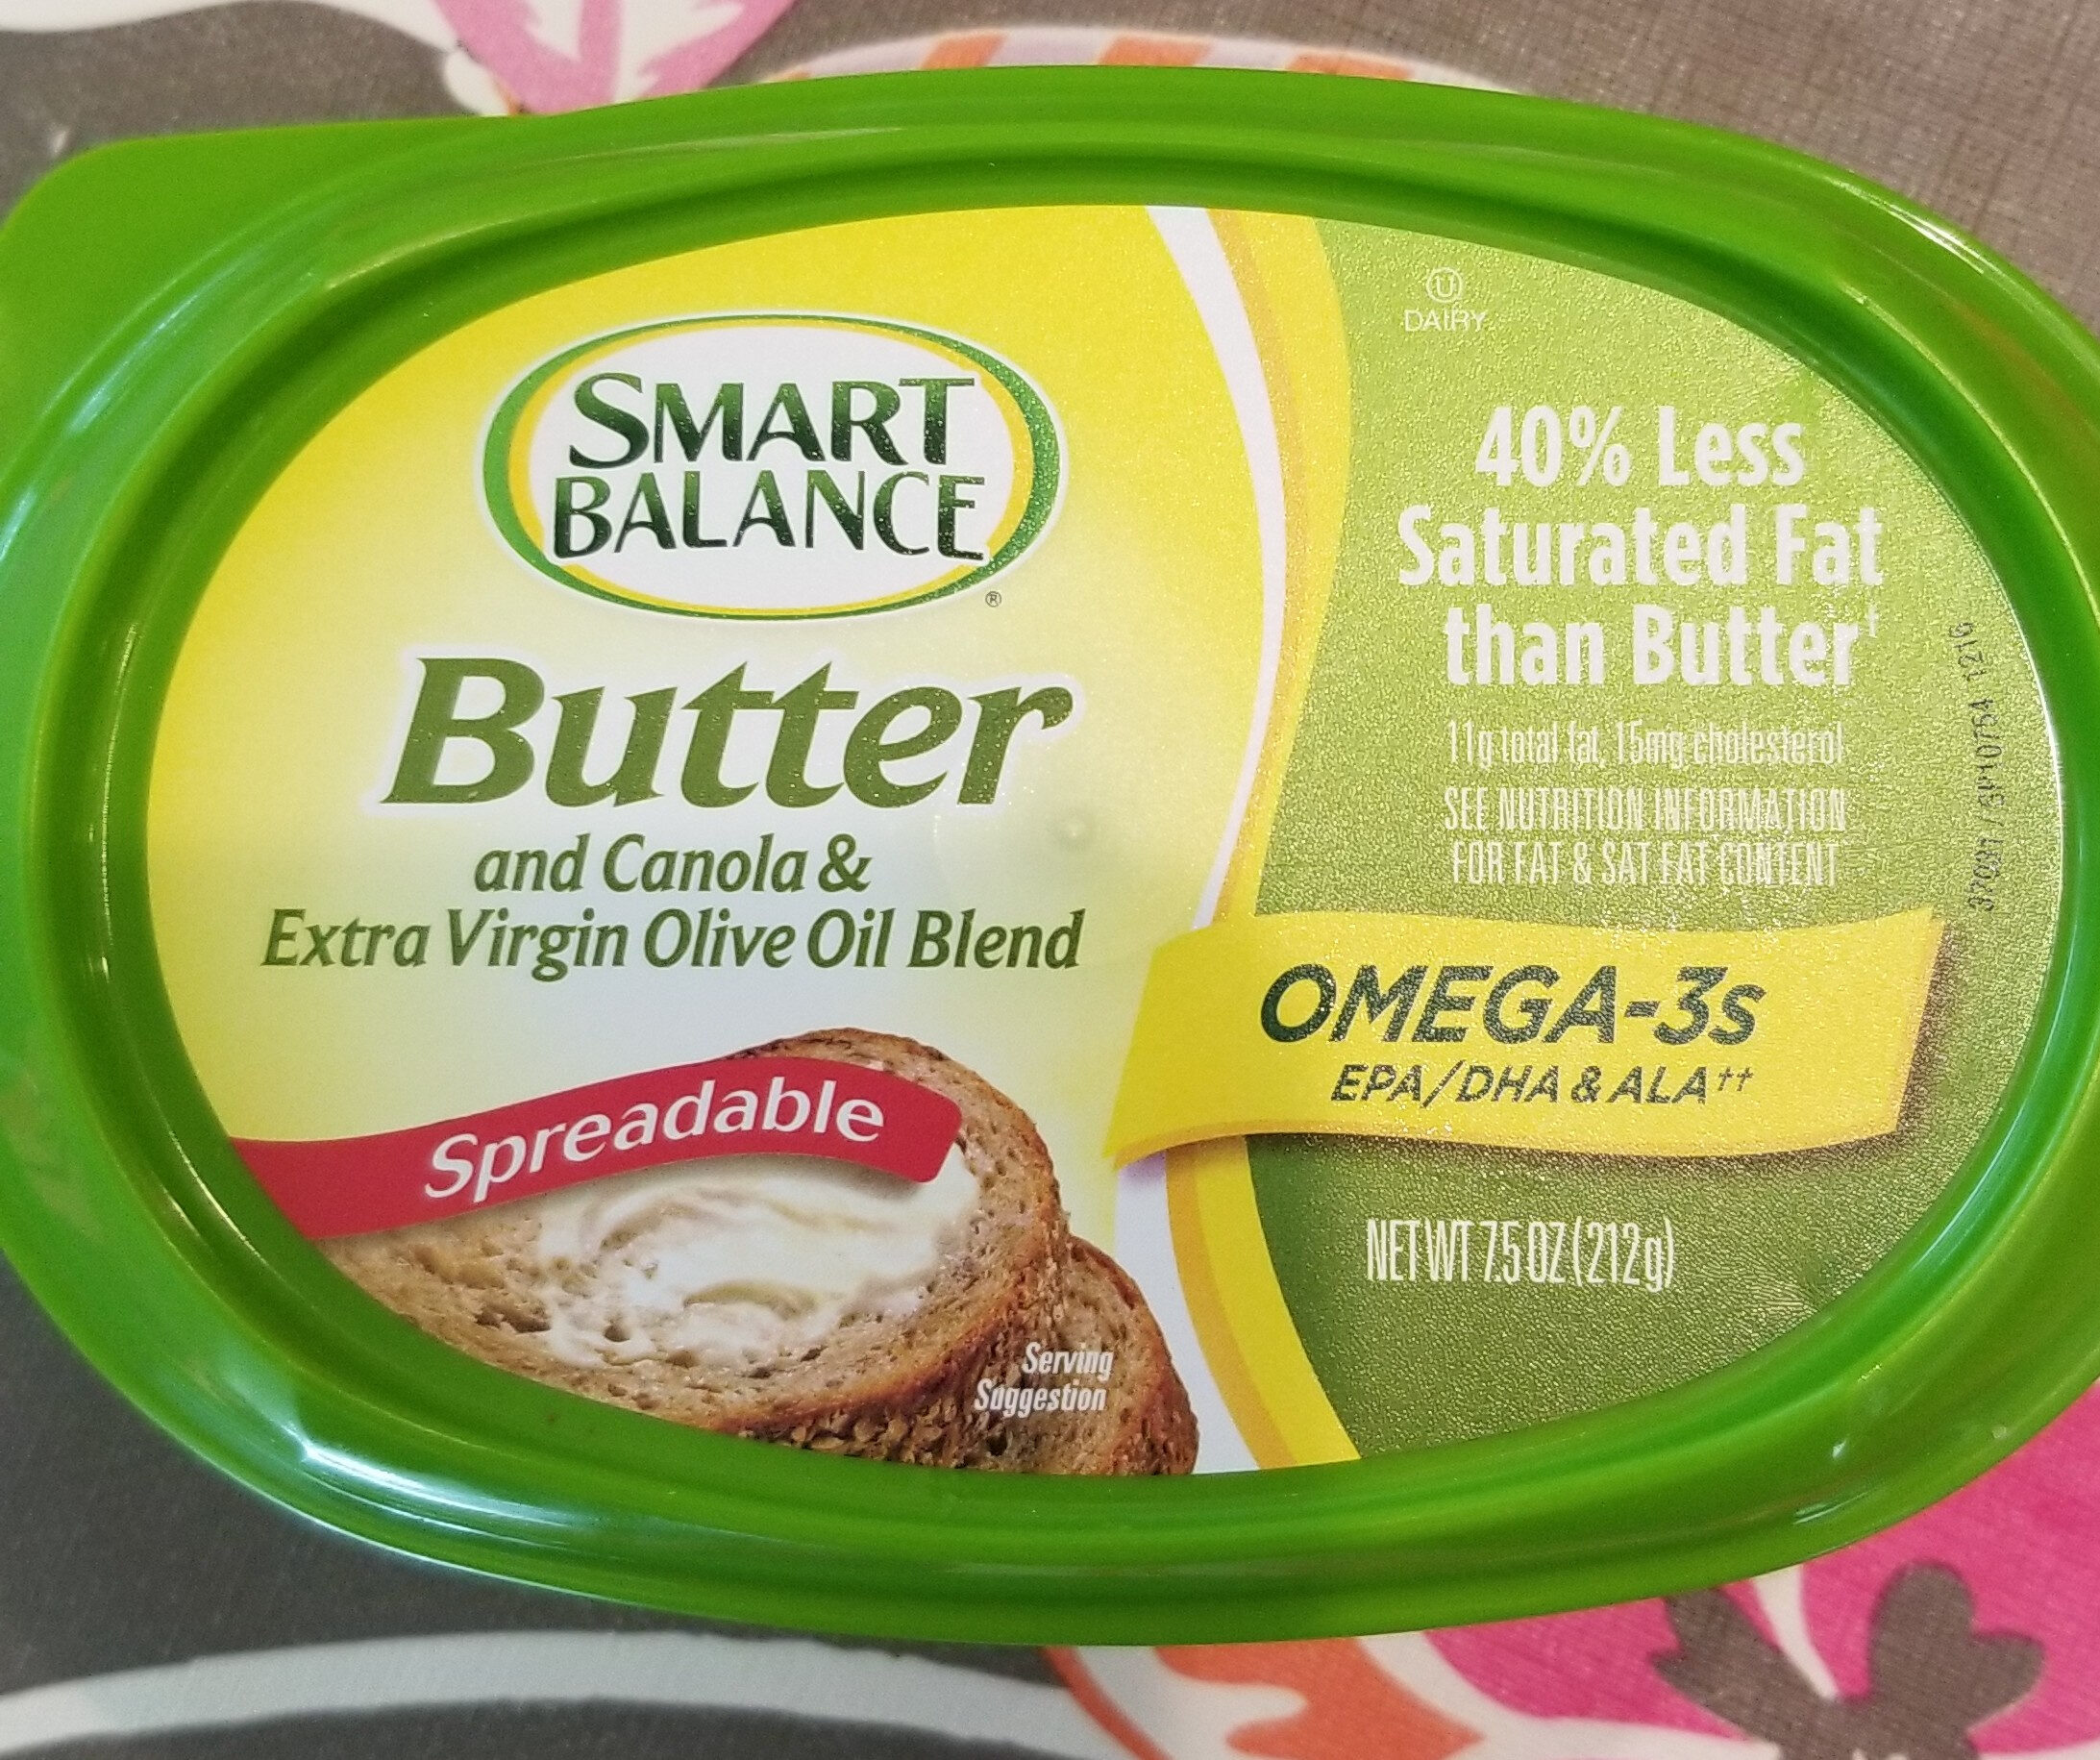 Spreadable butter and canola & extra virgin olive oil blend - Product - en